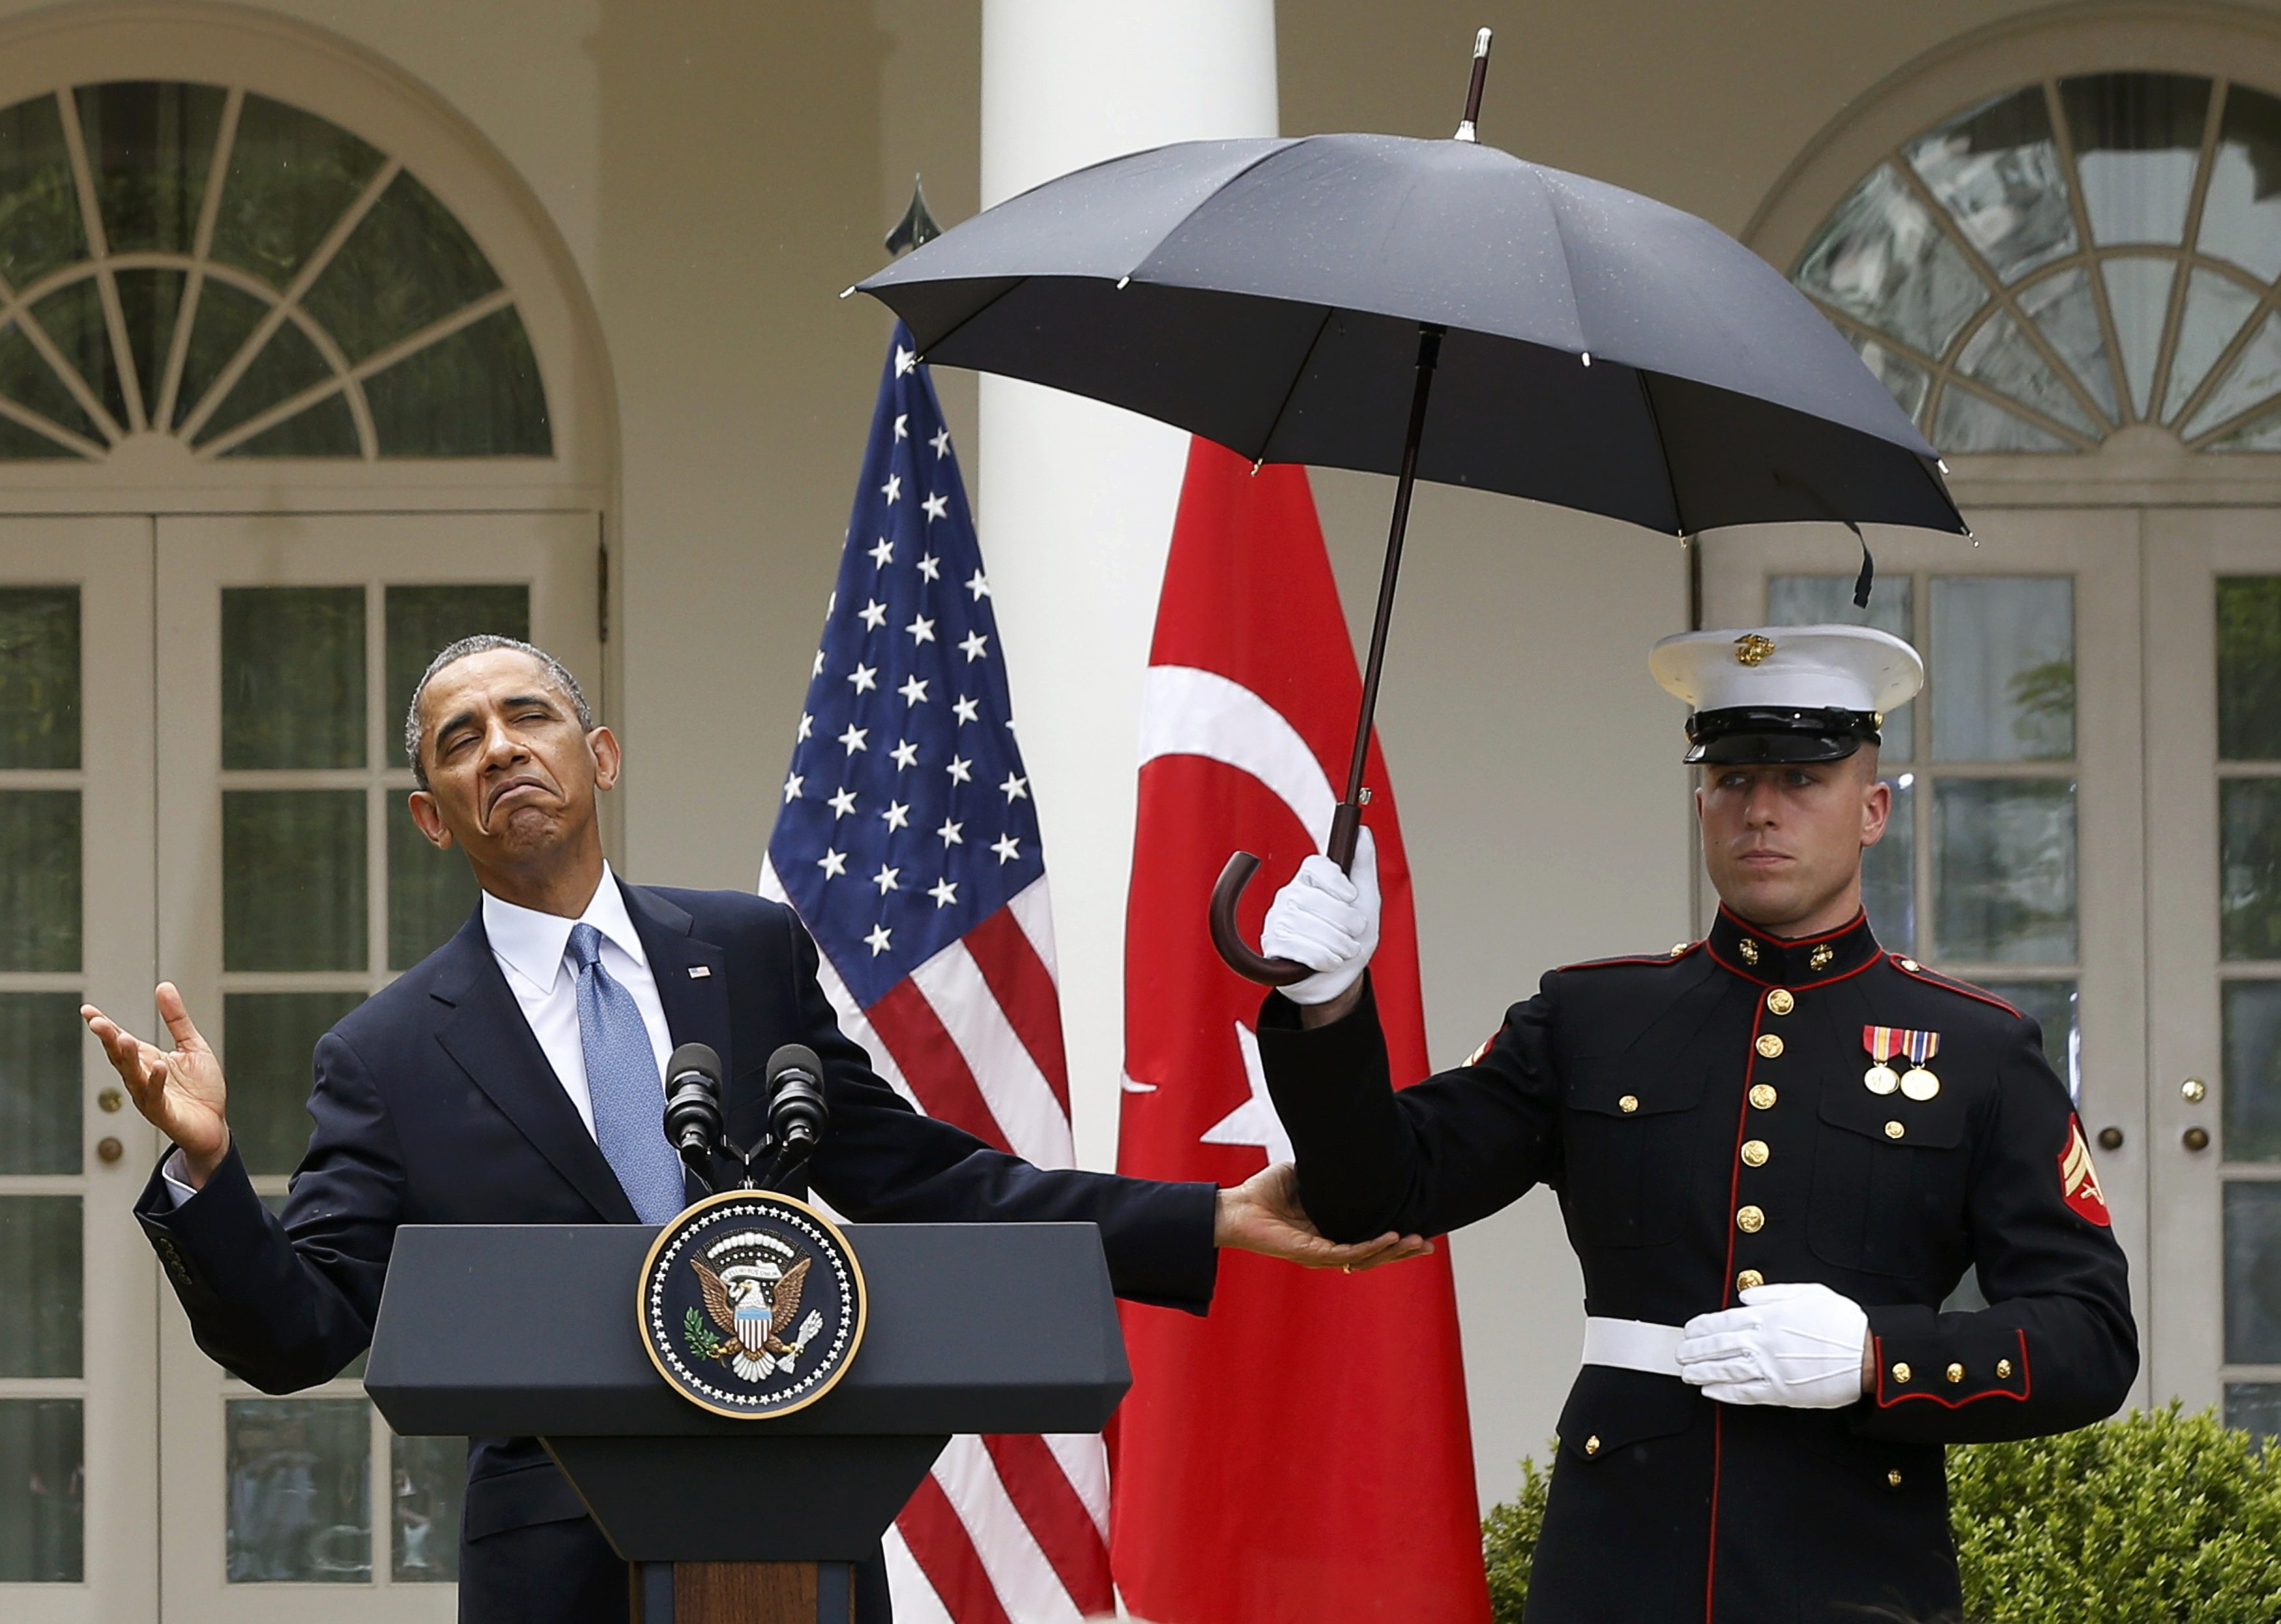 President Barack Obama decides he no longer needs umbrella help. (REUTERS/Jason Reed)